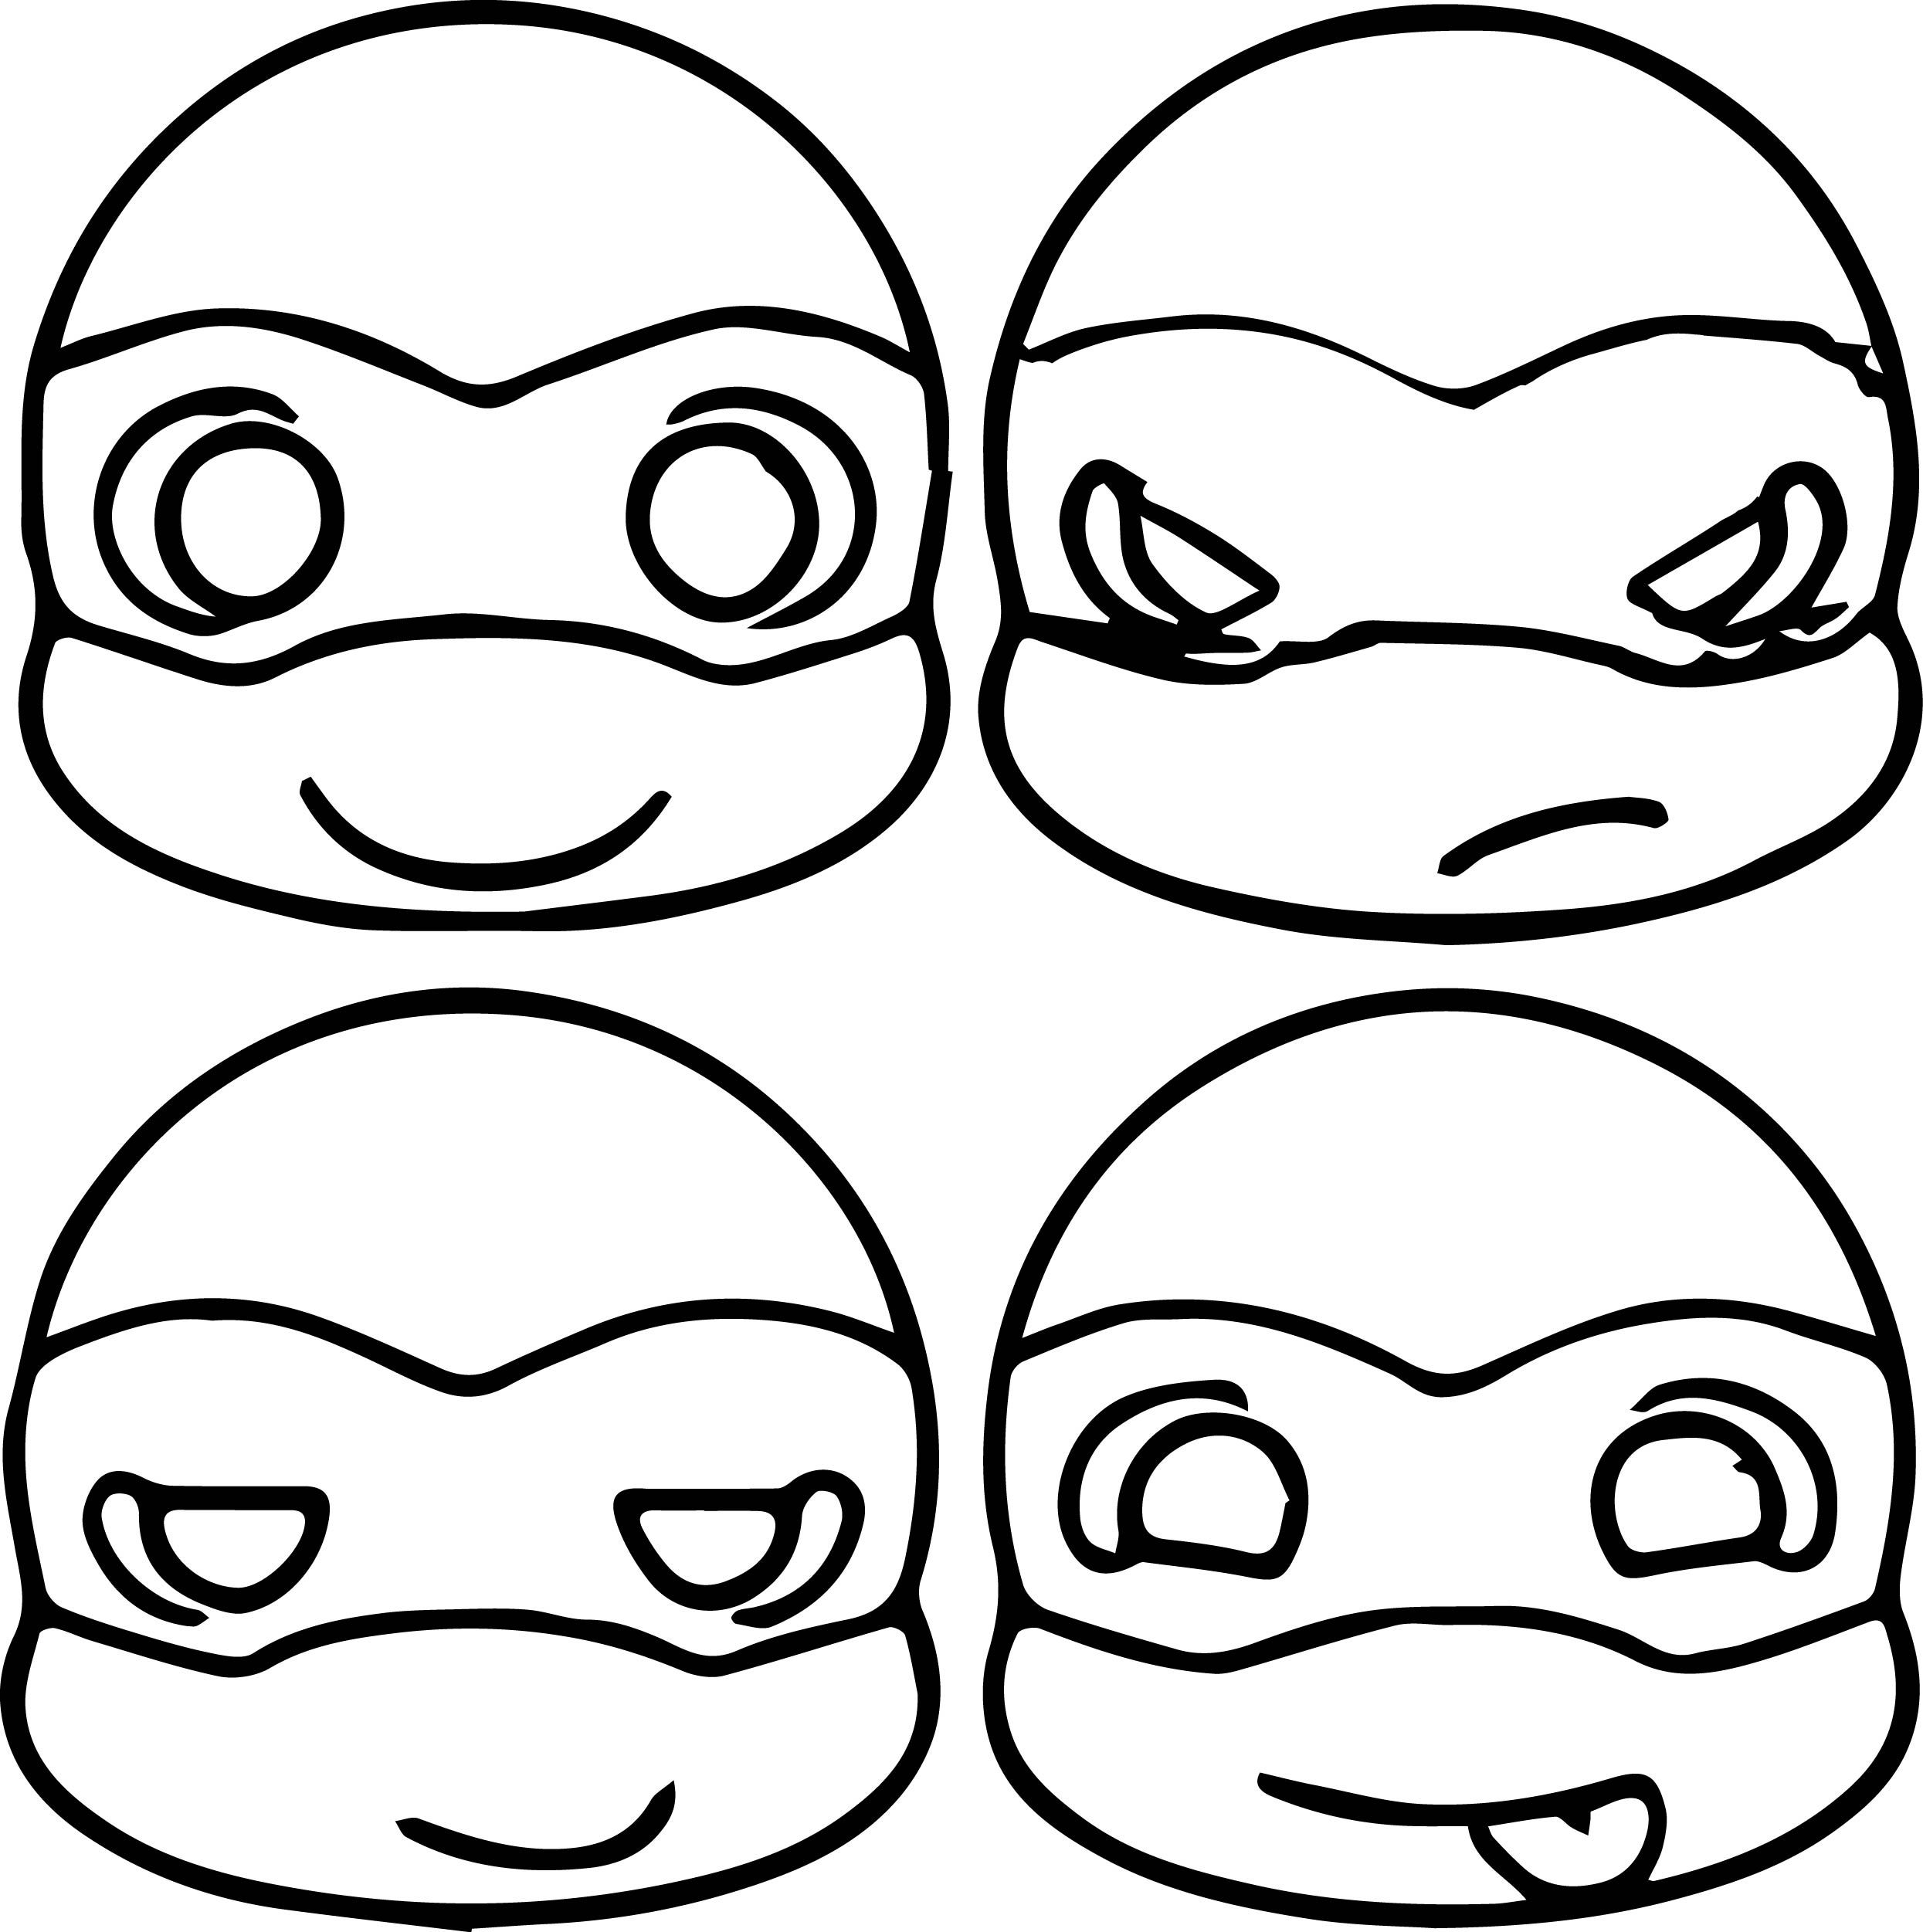 Cute Ninja Turtle Head Coloring Page Cartoons Variety